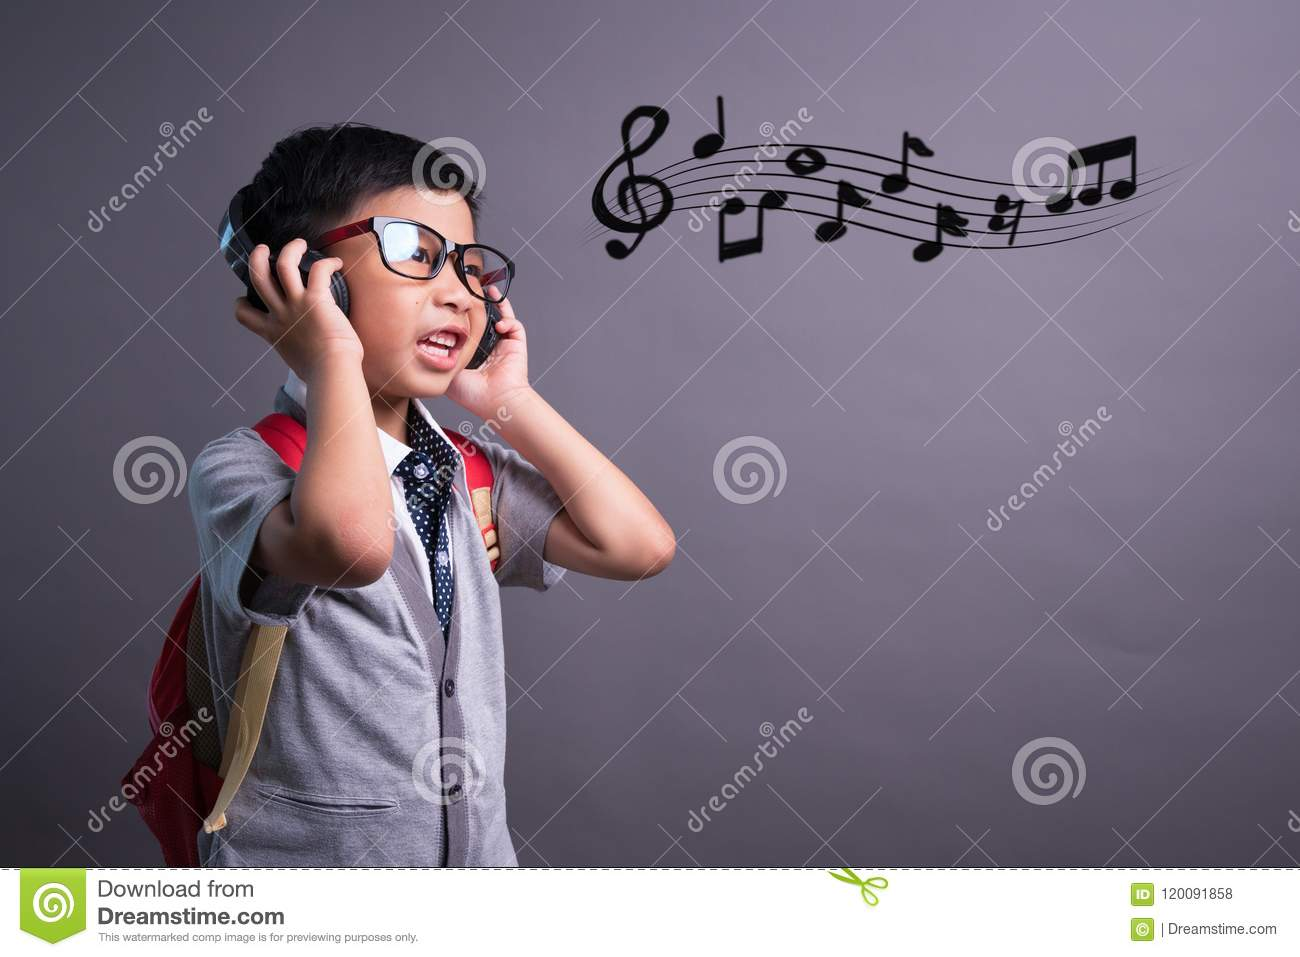 Cute funny children in dance studio, Cute little boy in headphones listening to music on color background